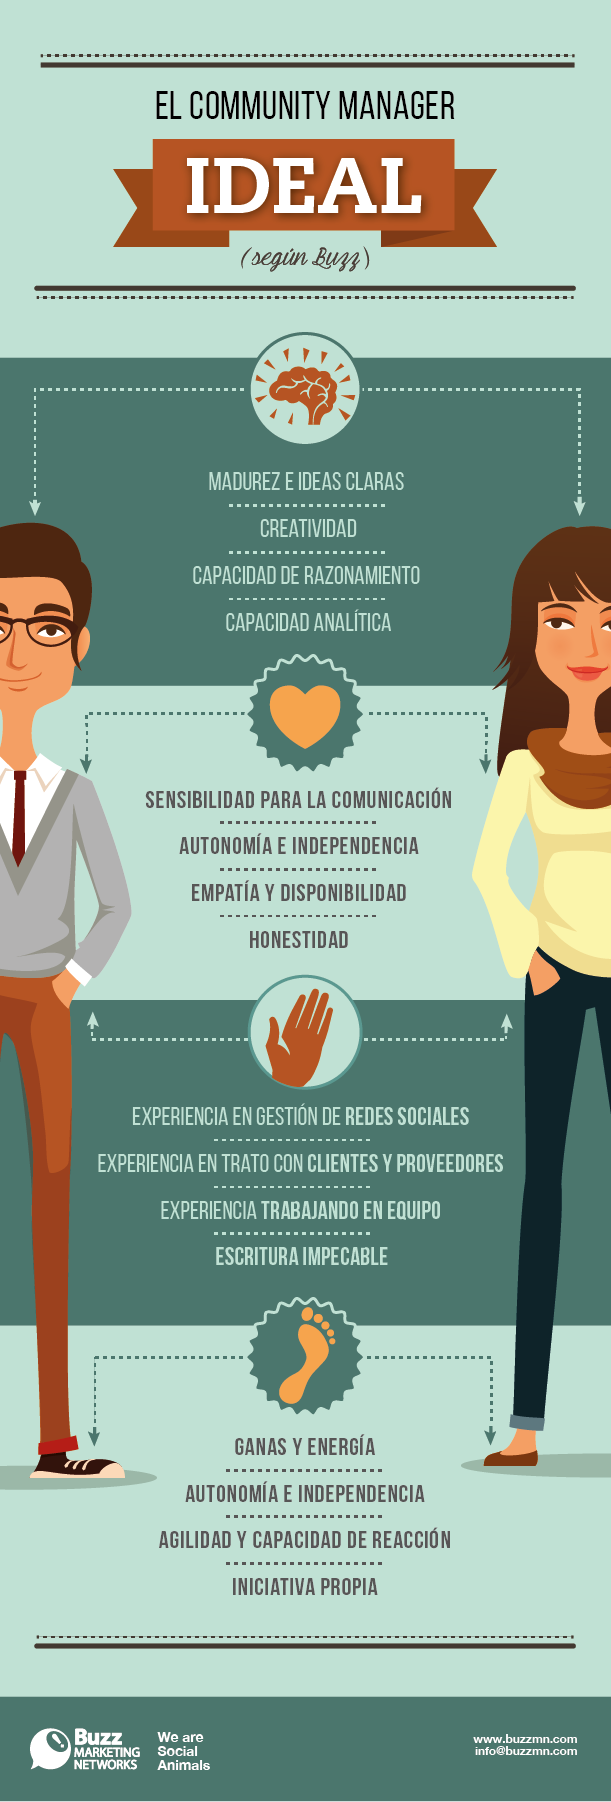 El Community Manager ideal